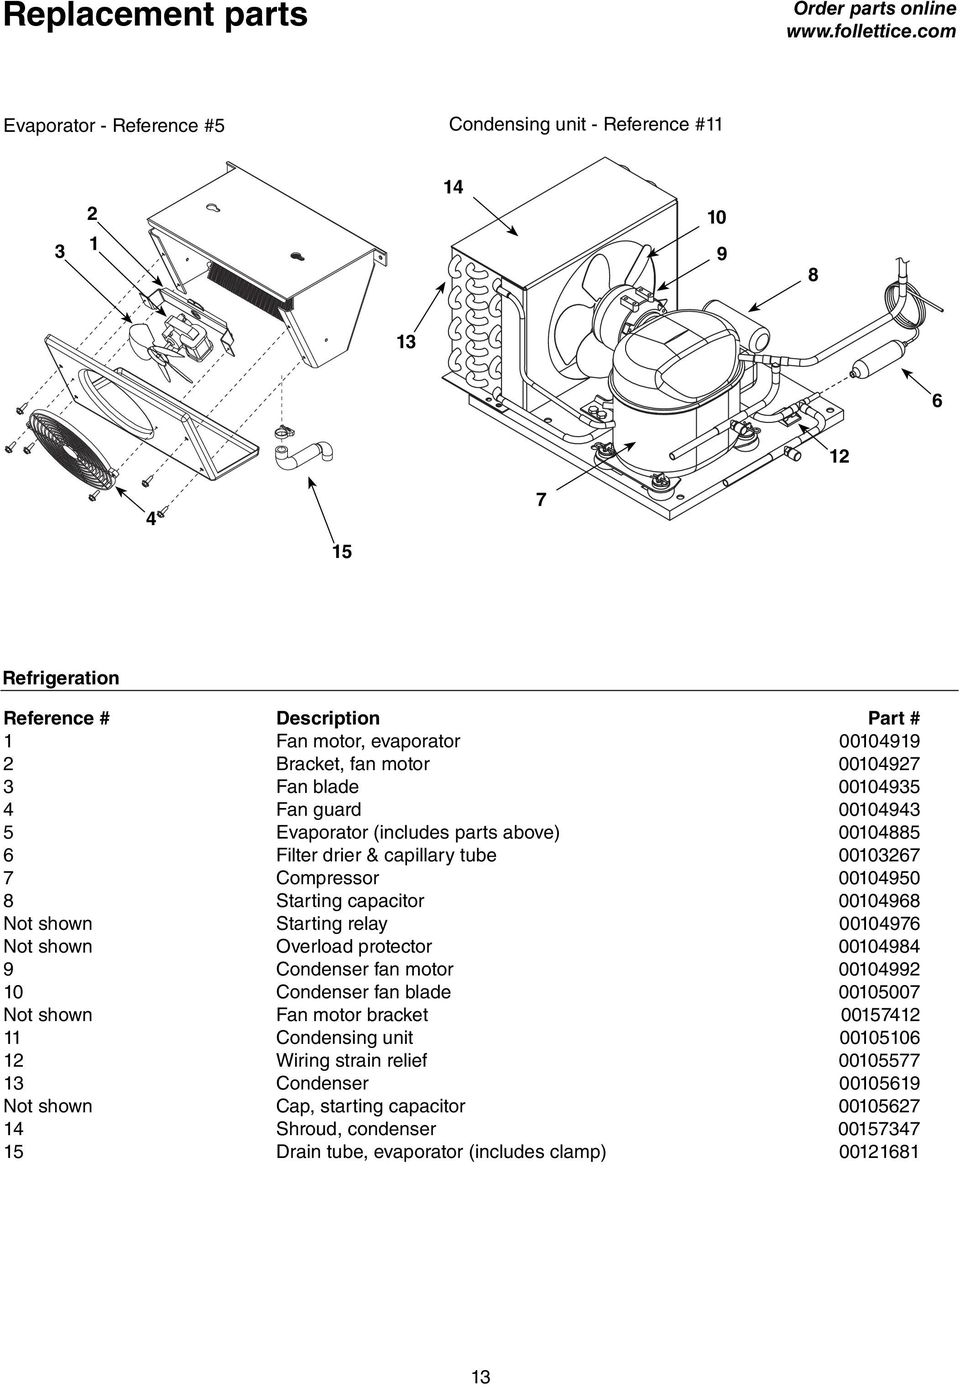 Ref Series Undercounter Refrigerator Pdf Condenser Fan Motor Wiring Diagram Reference Blade 0004935 4 Guard 0004943 5 Evaporator Includes Parts Above 0004885 6 Filter